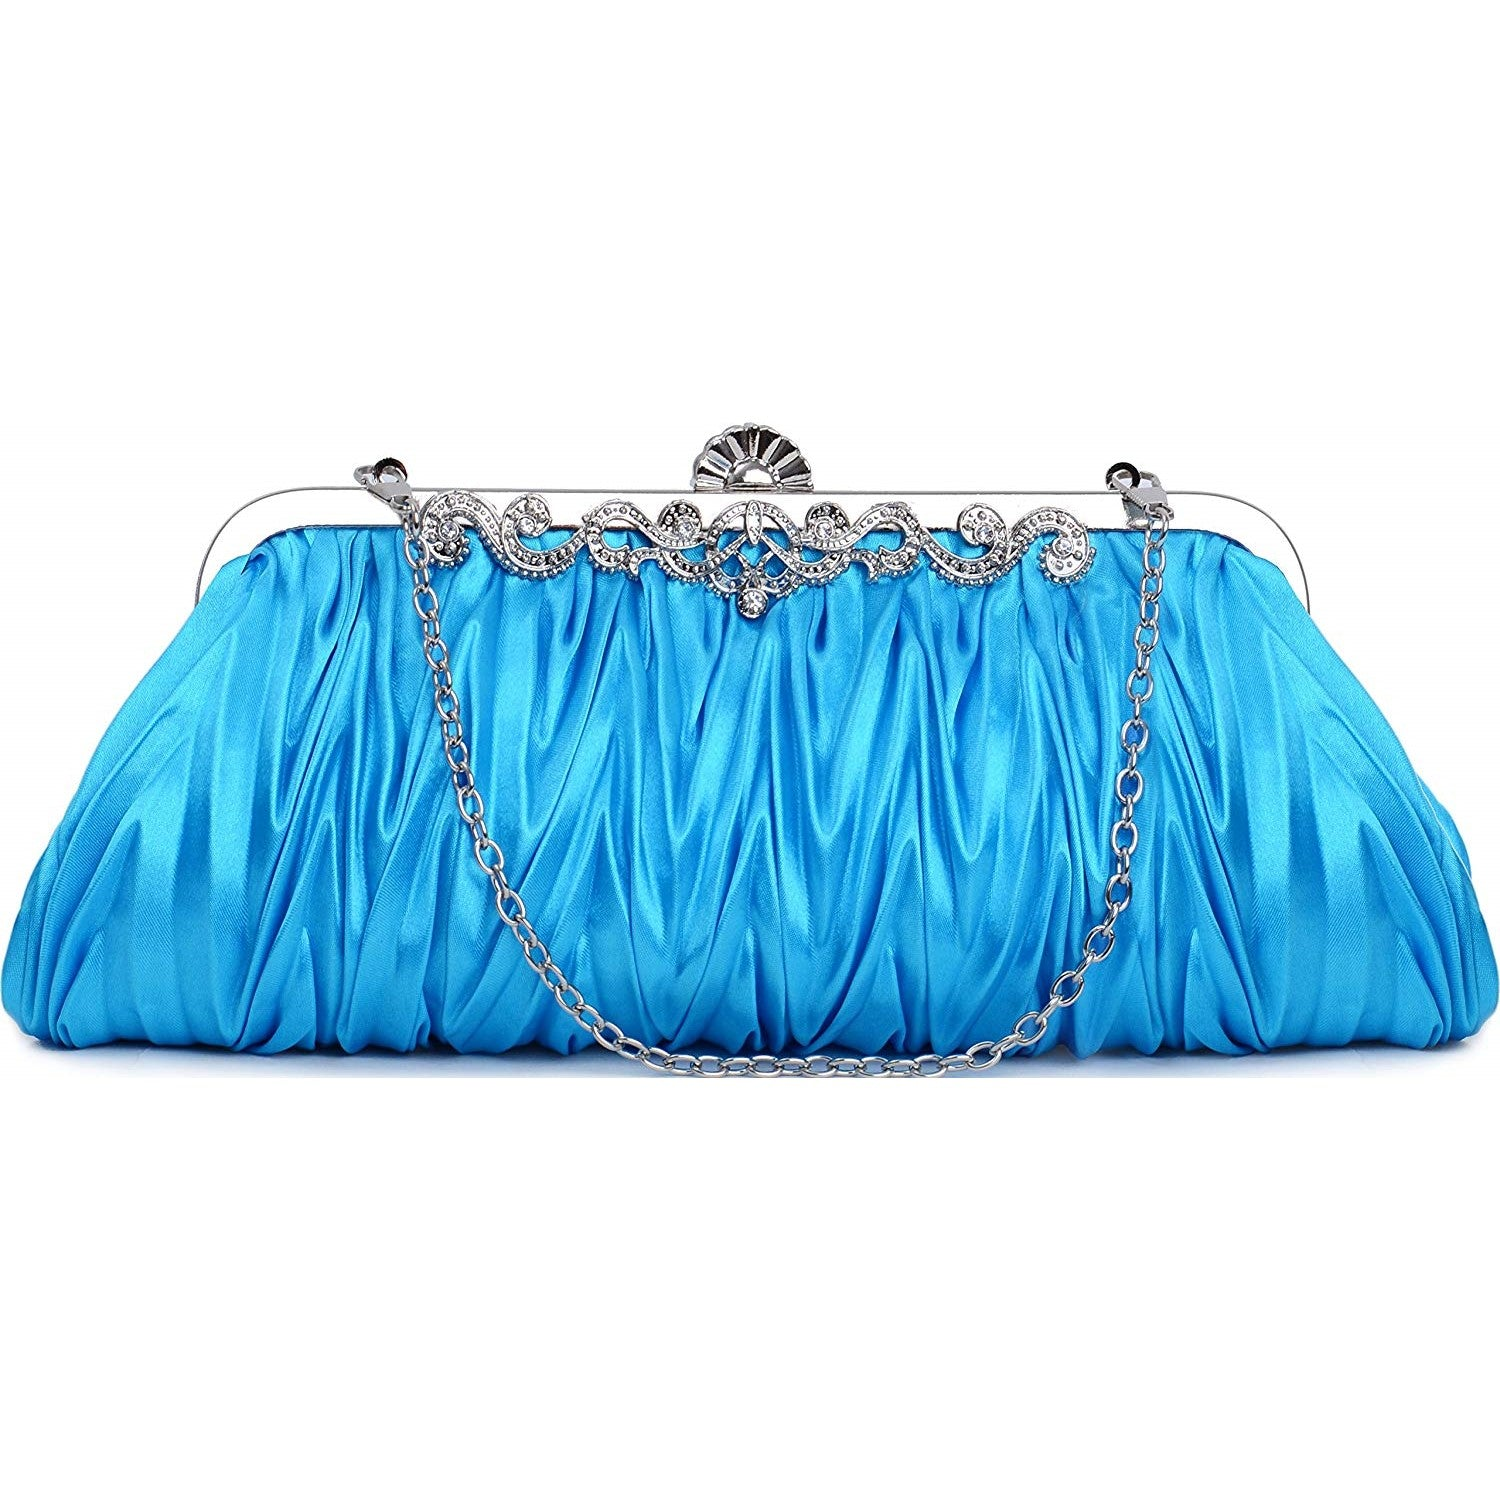 PULAMA Romantic Love Bridal Wallet For Wedding Evening Party Bag Purse, Sky Blue